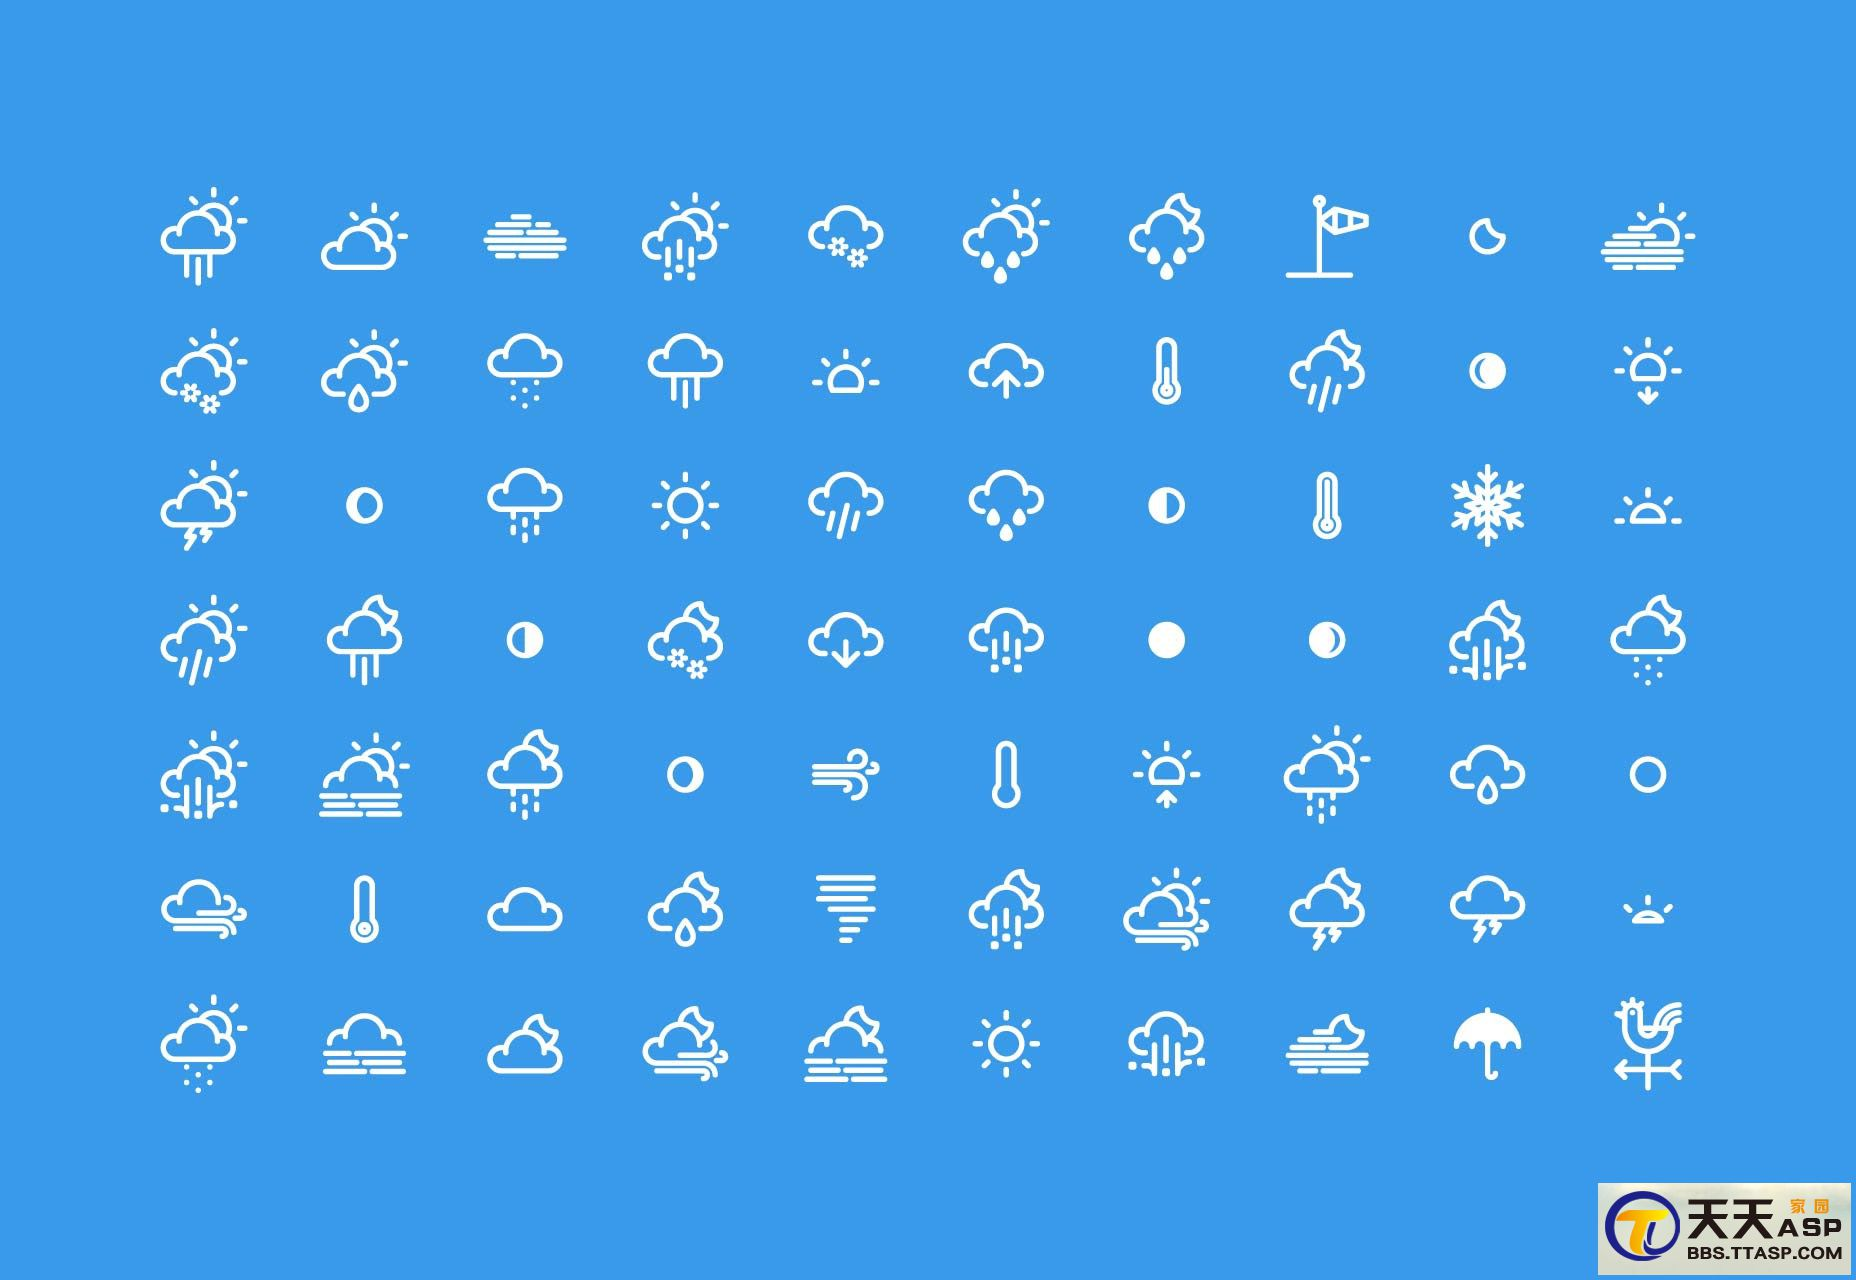 Weather icons.jpg